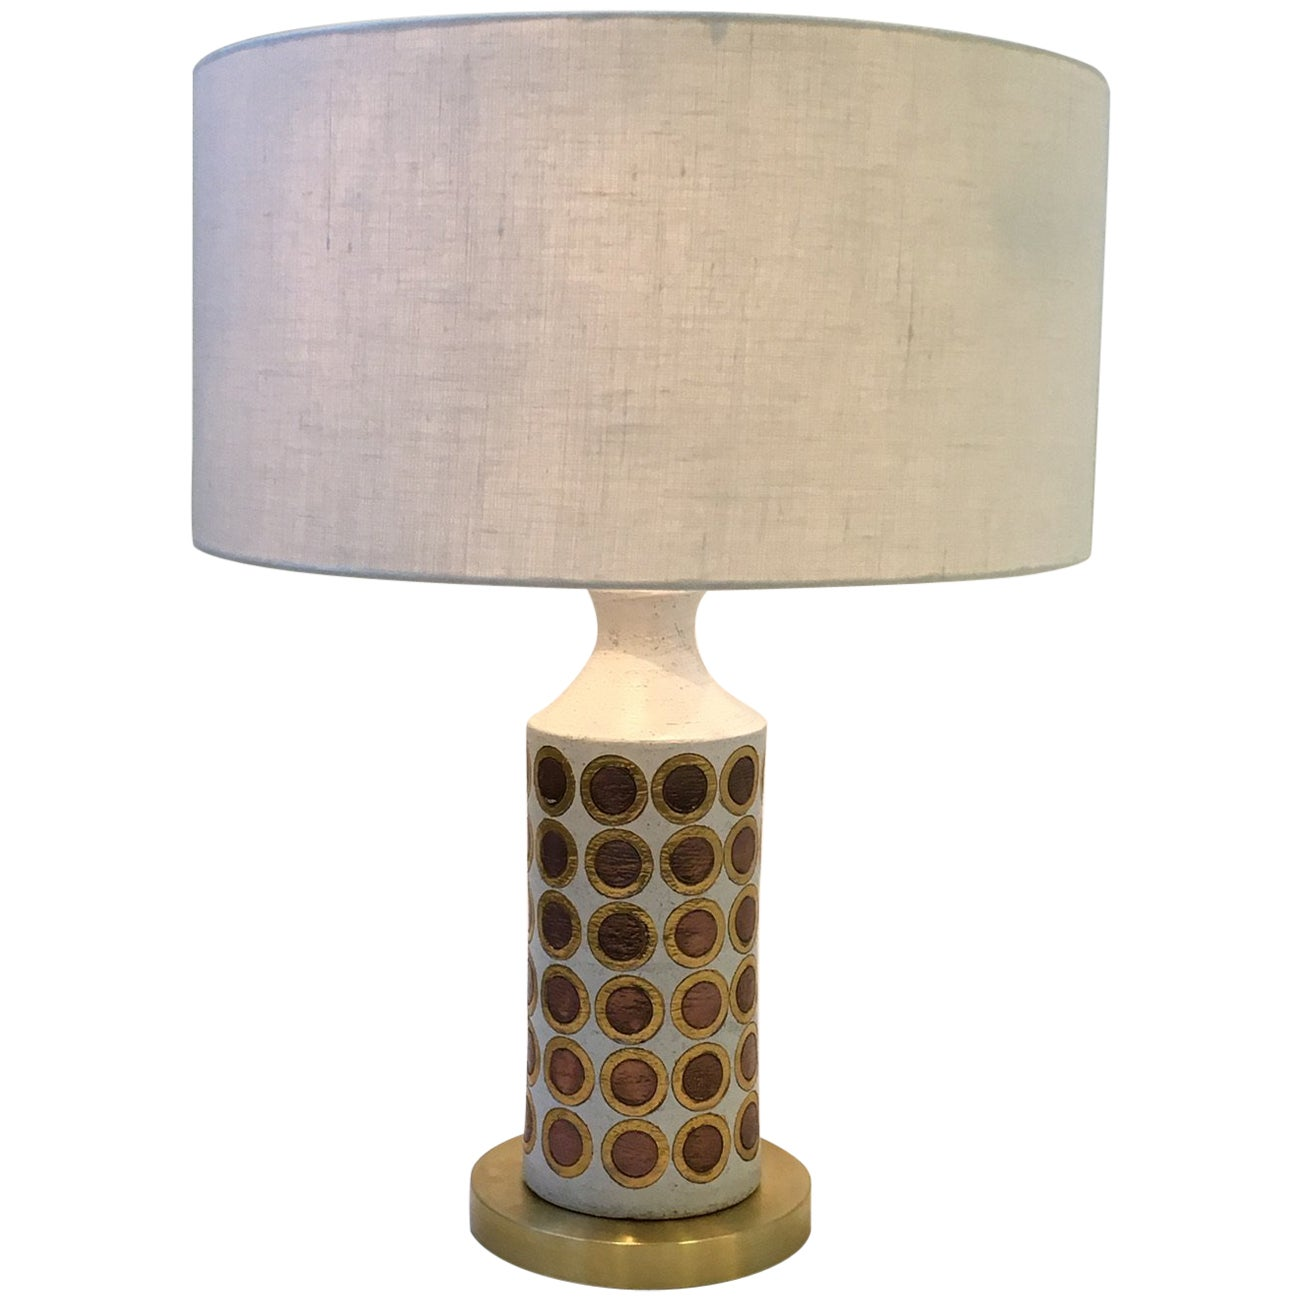 Italian Ceramic and Brass Table Lamp by Bitossi